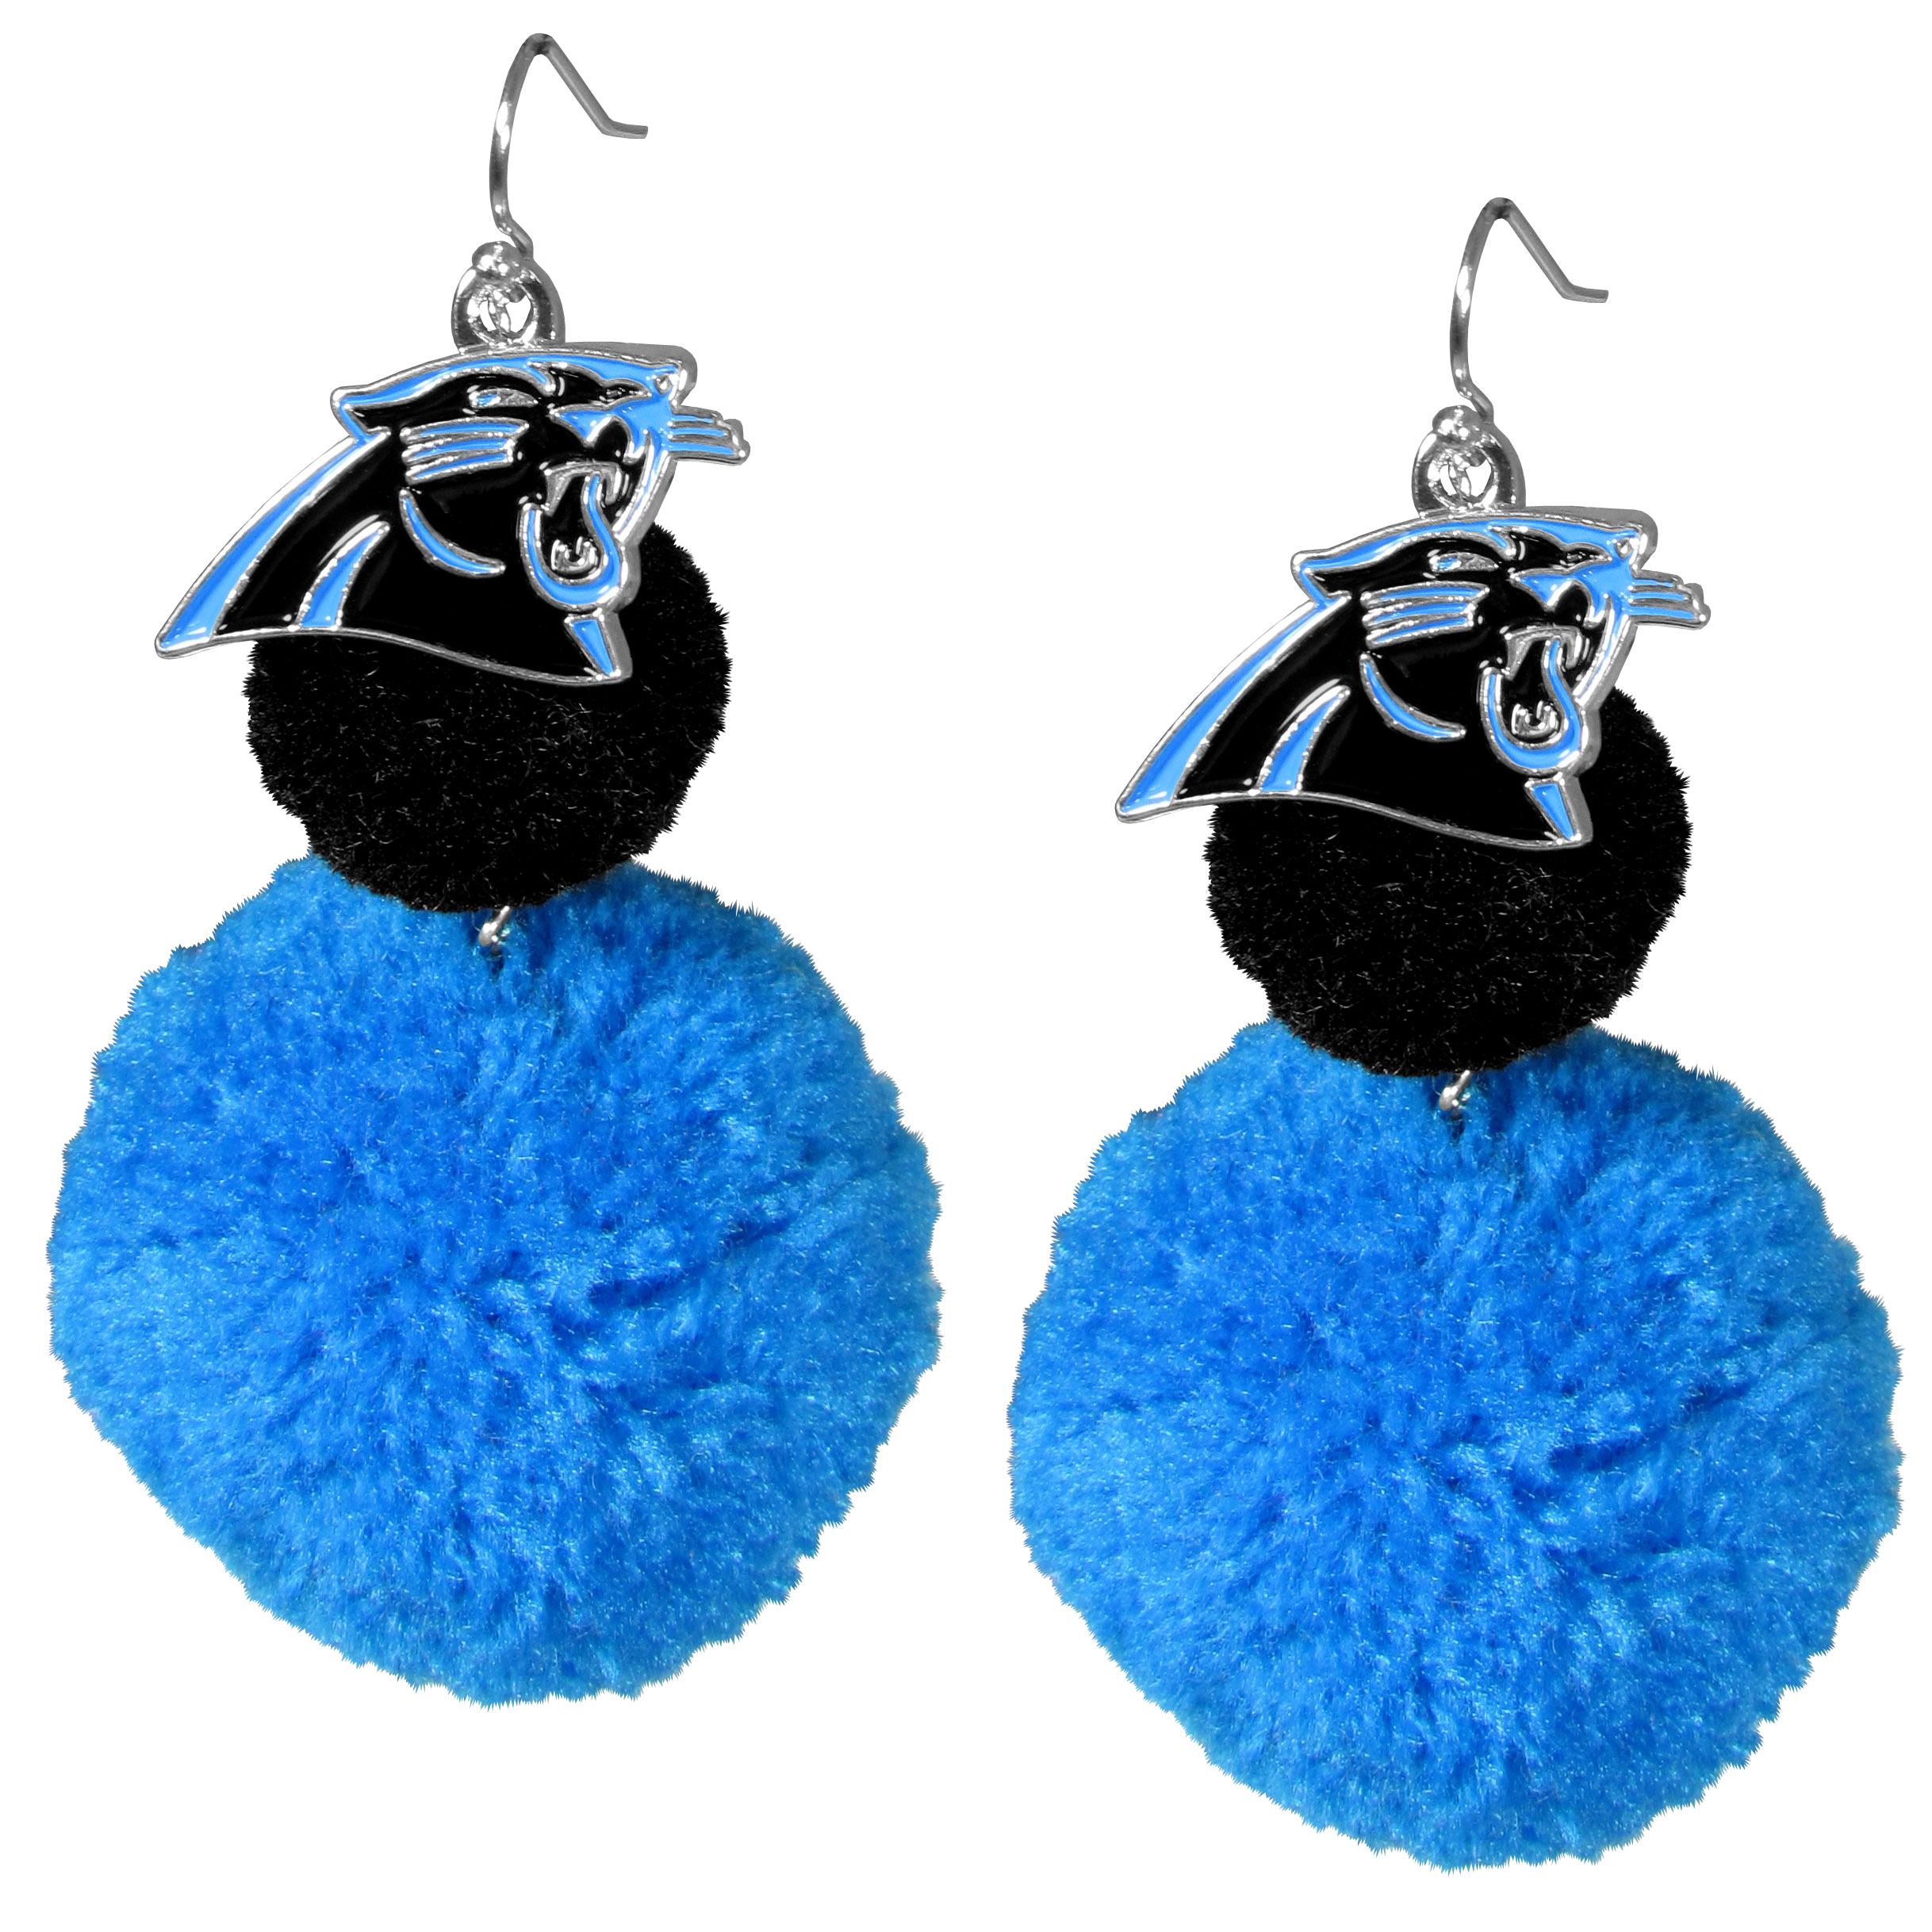 Carolina Panthers Pom Pom Earrings - These fun and bold earrings are a game day must! The earrings feature a metal Carolina Panthers charm with enameled color details that hangs above to colorful pom pom charms. The largest pom is 1.5 inches round for, the earrings hang at 3.5 inches long. The fishhook posts are nickel free and hypoallergenic.